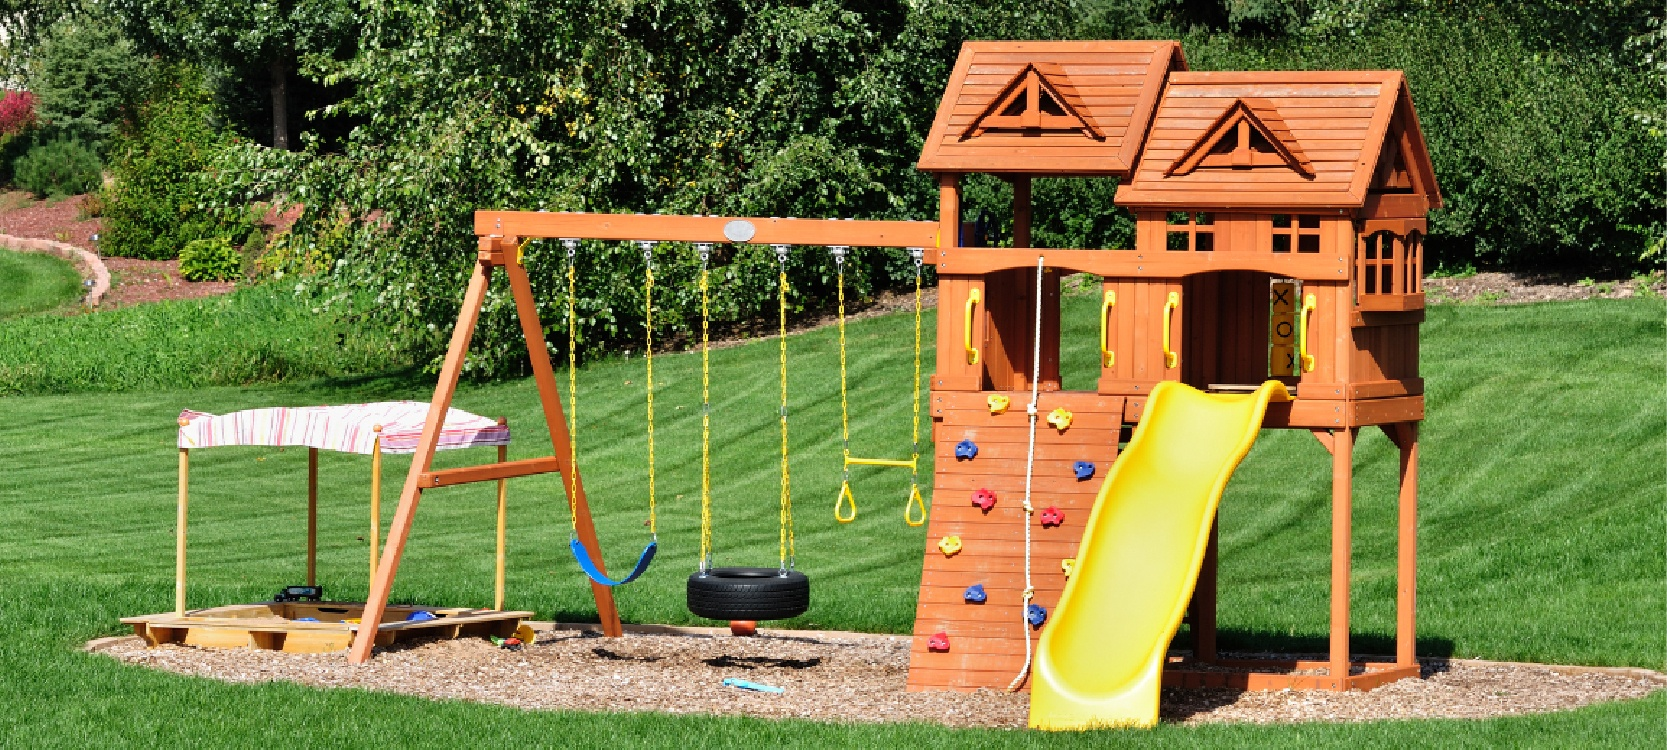 the nice outdoor play area for kids in sunny backyard